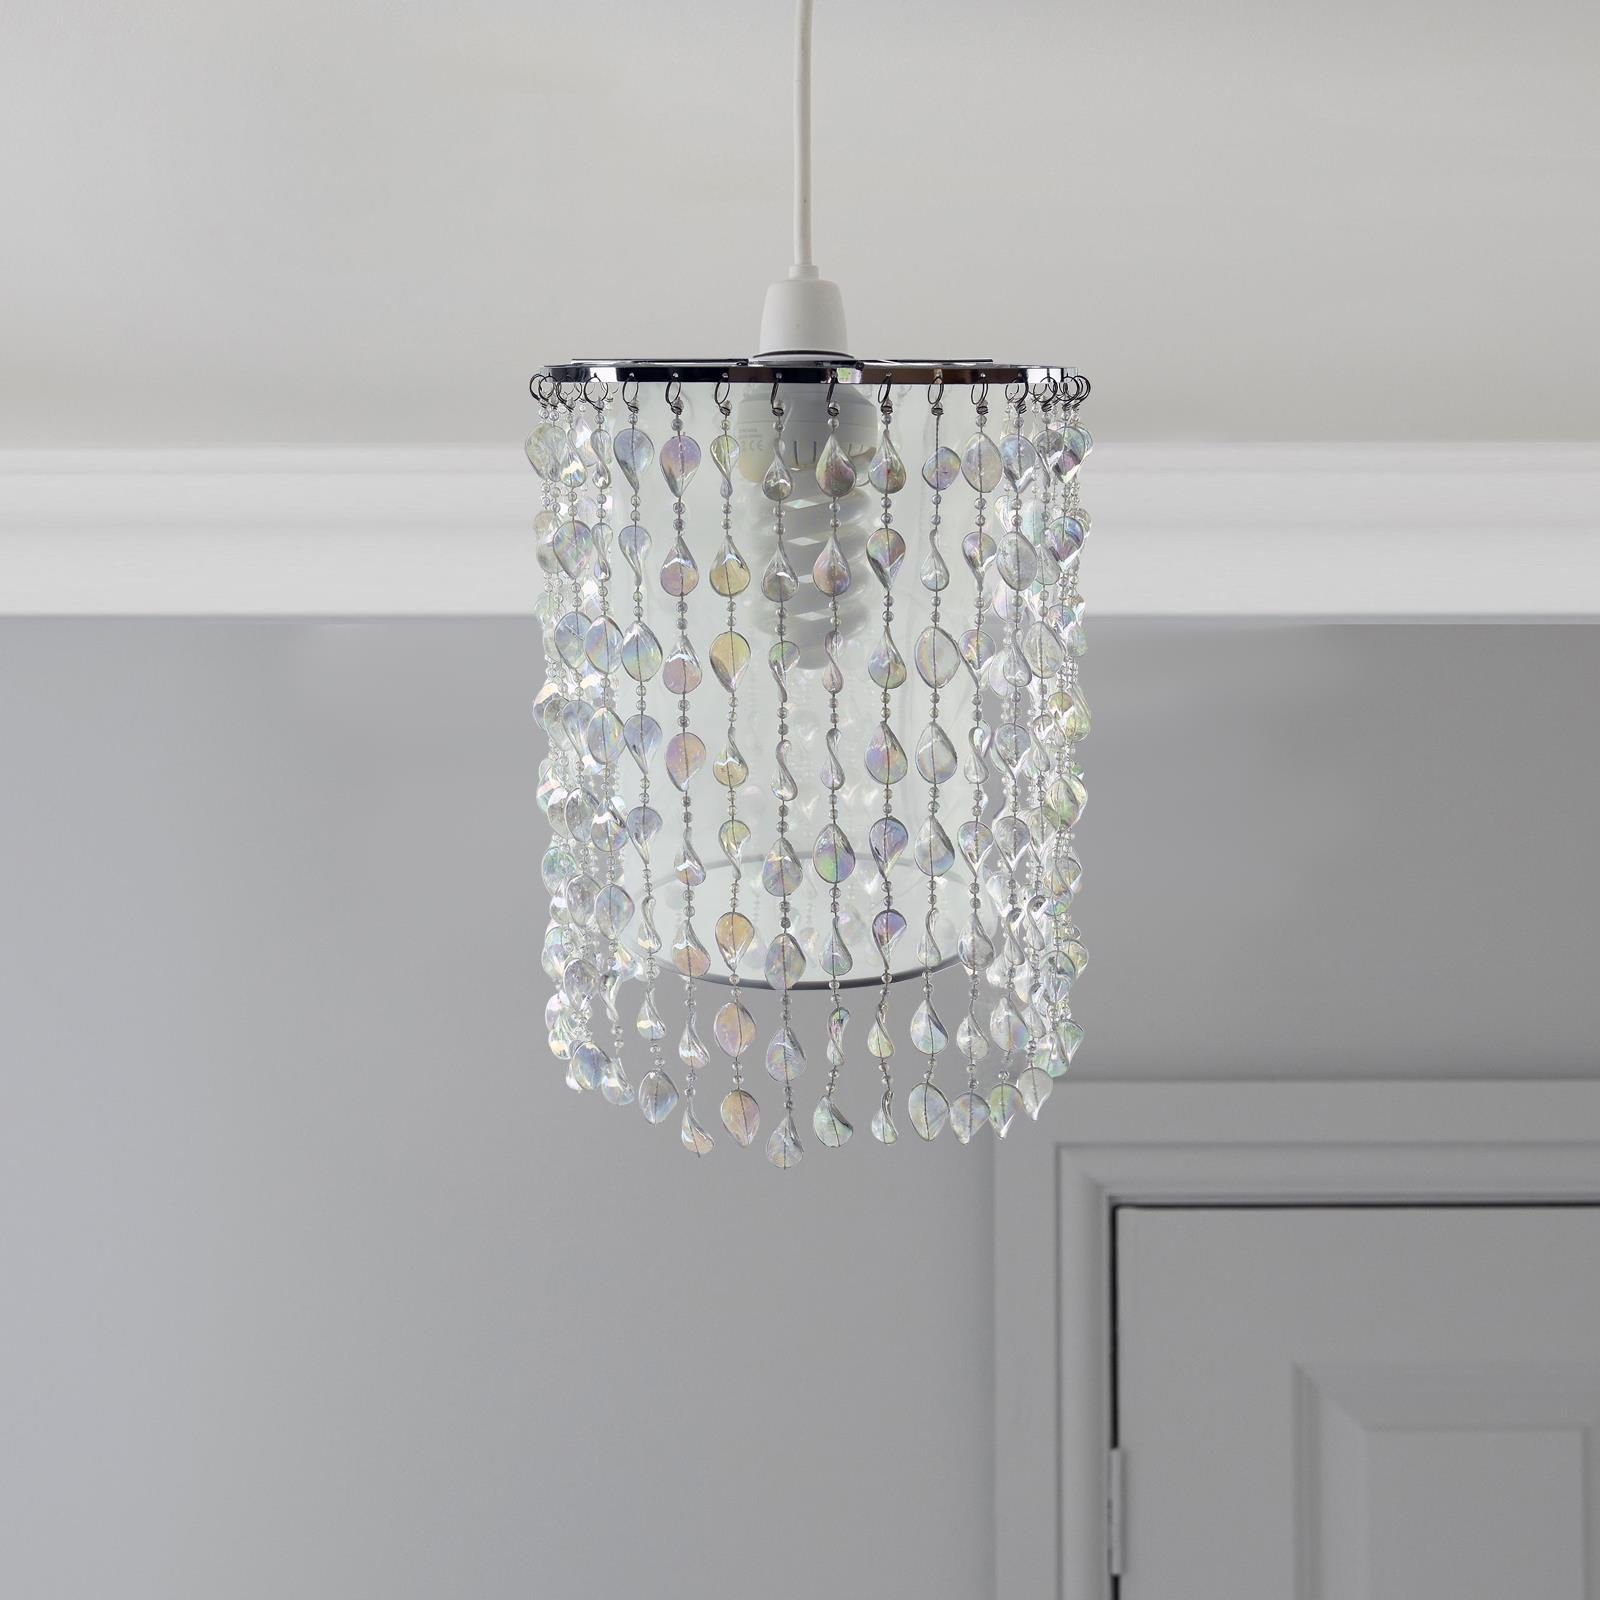 Modern-Chandelier-Style-Ceiling-Light-Lamp-Shade-Drop-Pendant-Acrylic-Crystal thumbnail 38